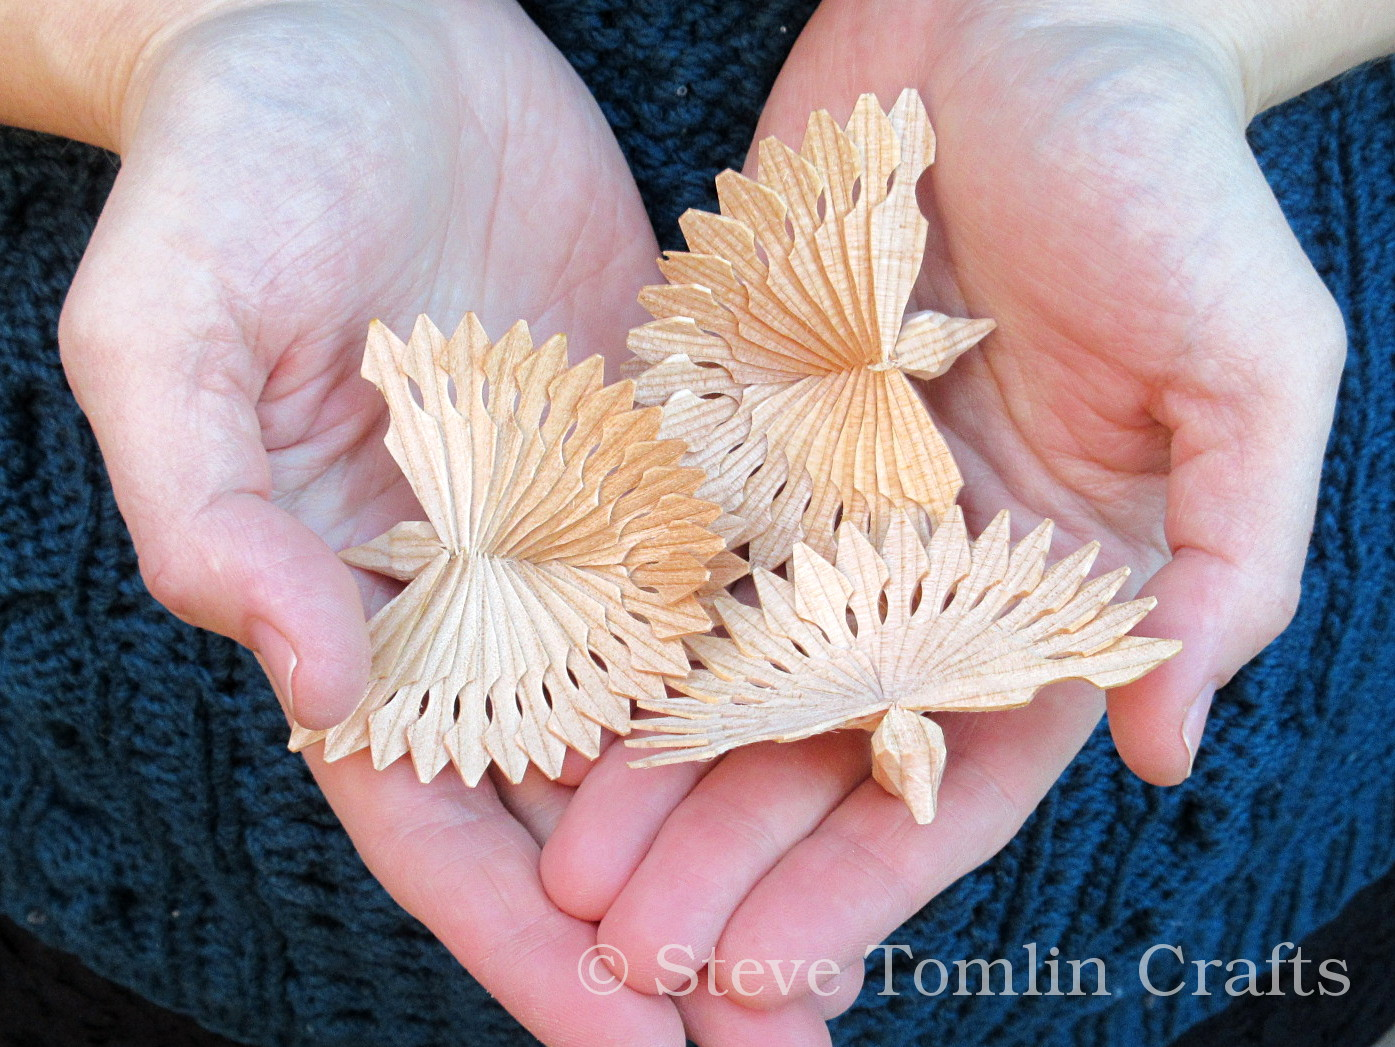 Gorgeous wooden bird decorations handmade by Steve Tomlin Crafts